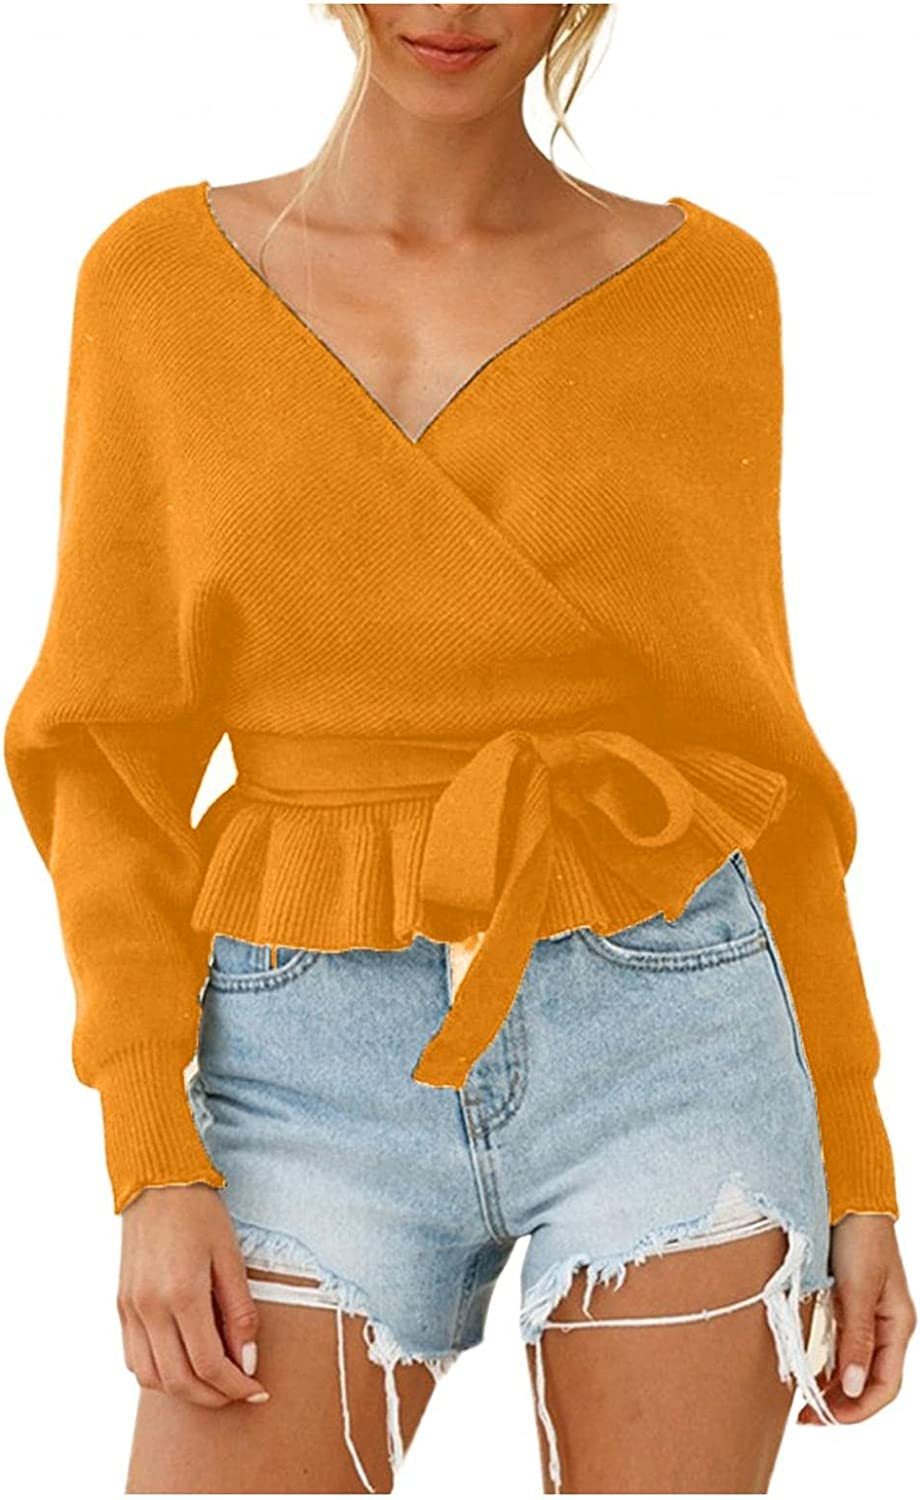 Blouse Shirt for depot Woman Women Knit Long Pullover Sleeve New product type Waffle Tu